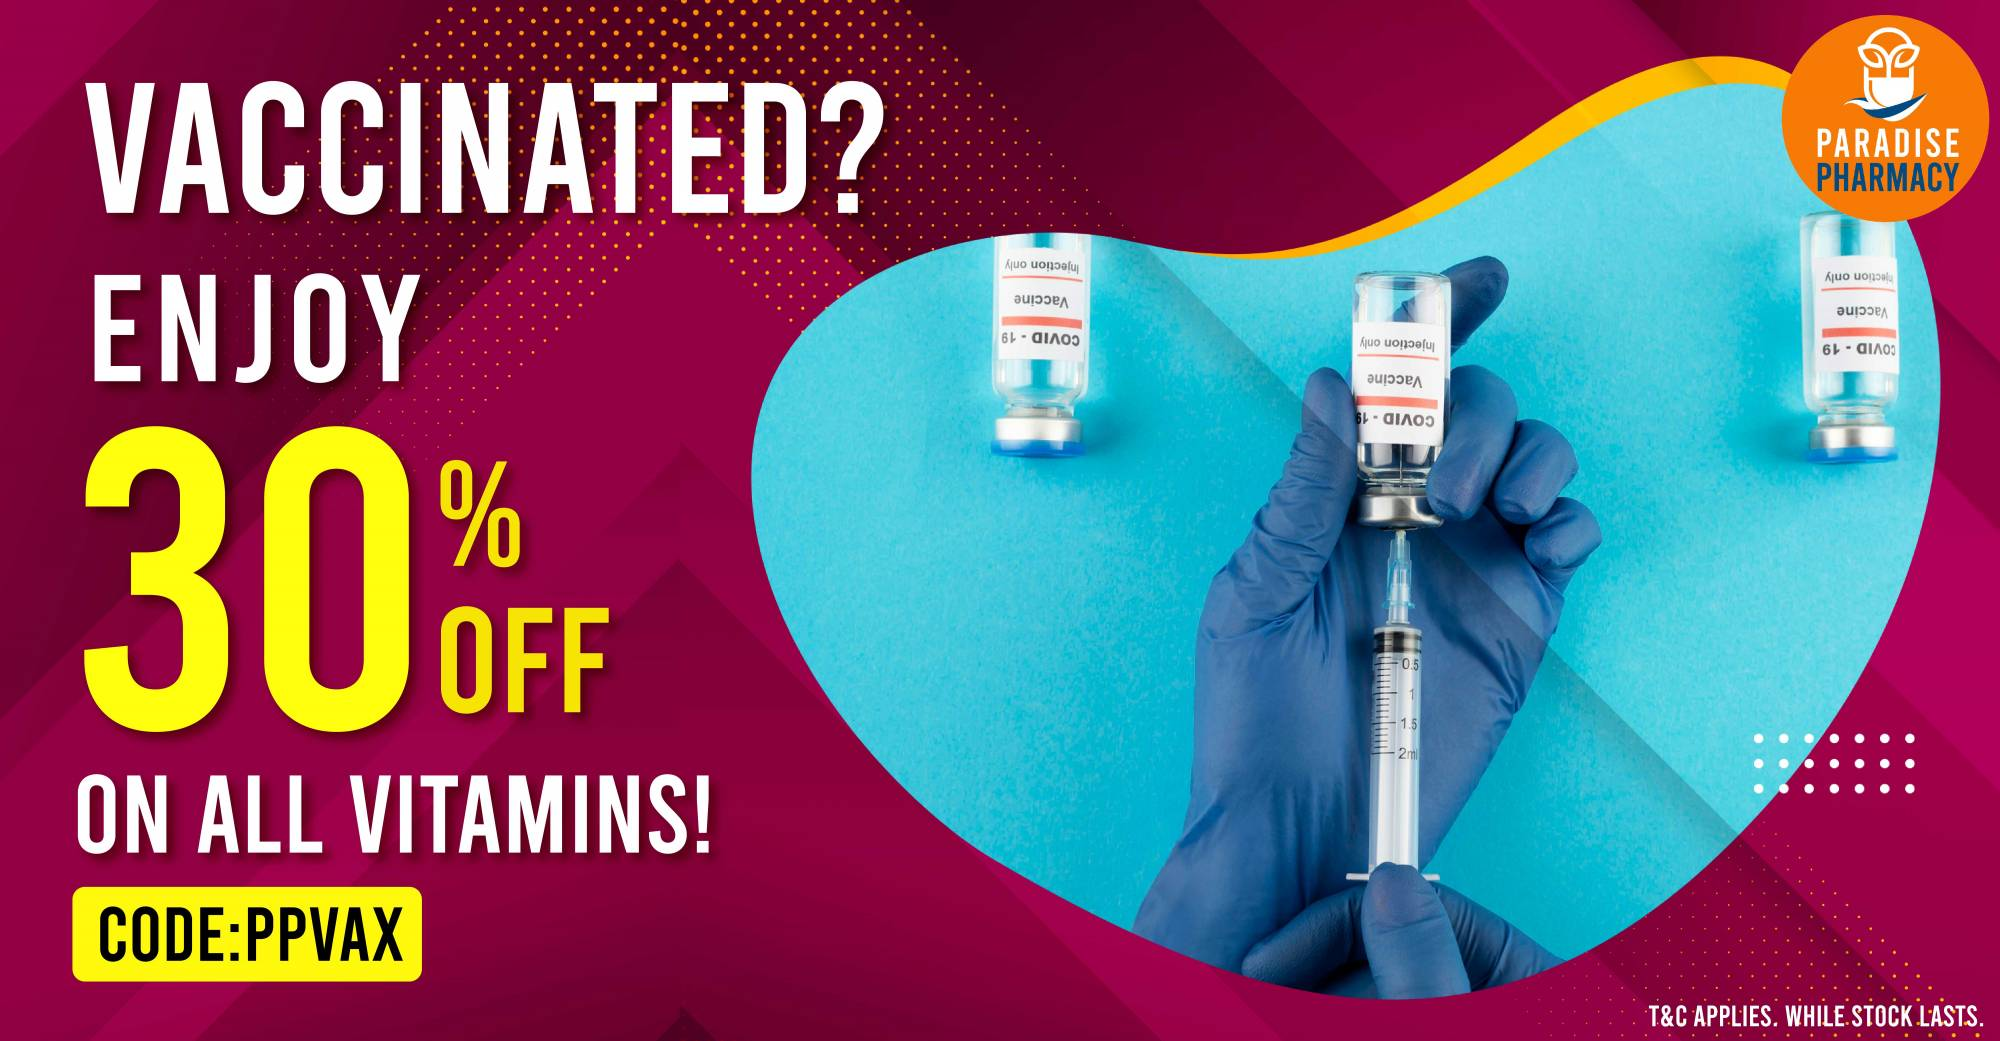 VACCINATED 30% OFF